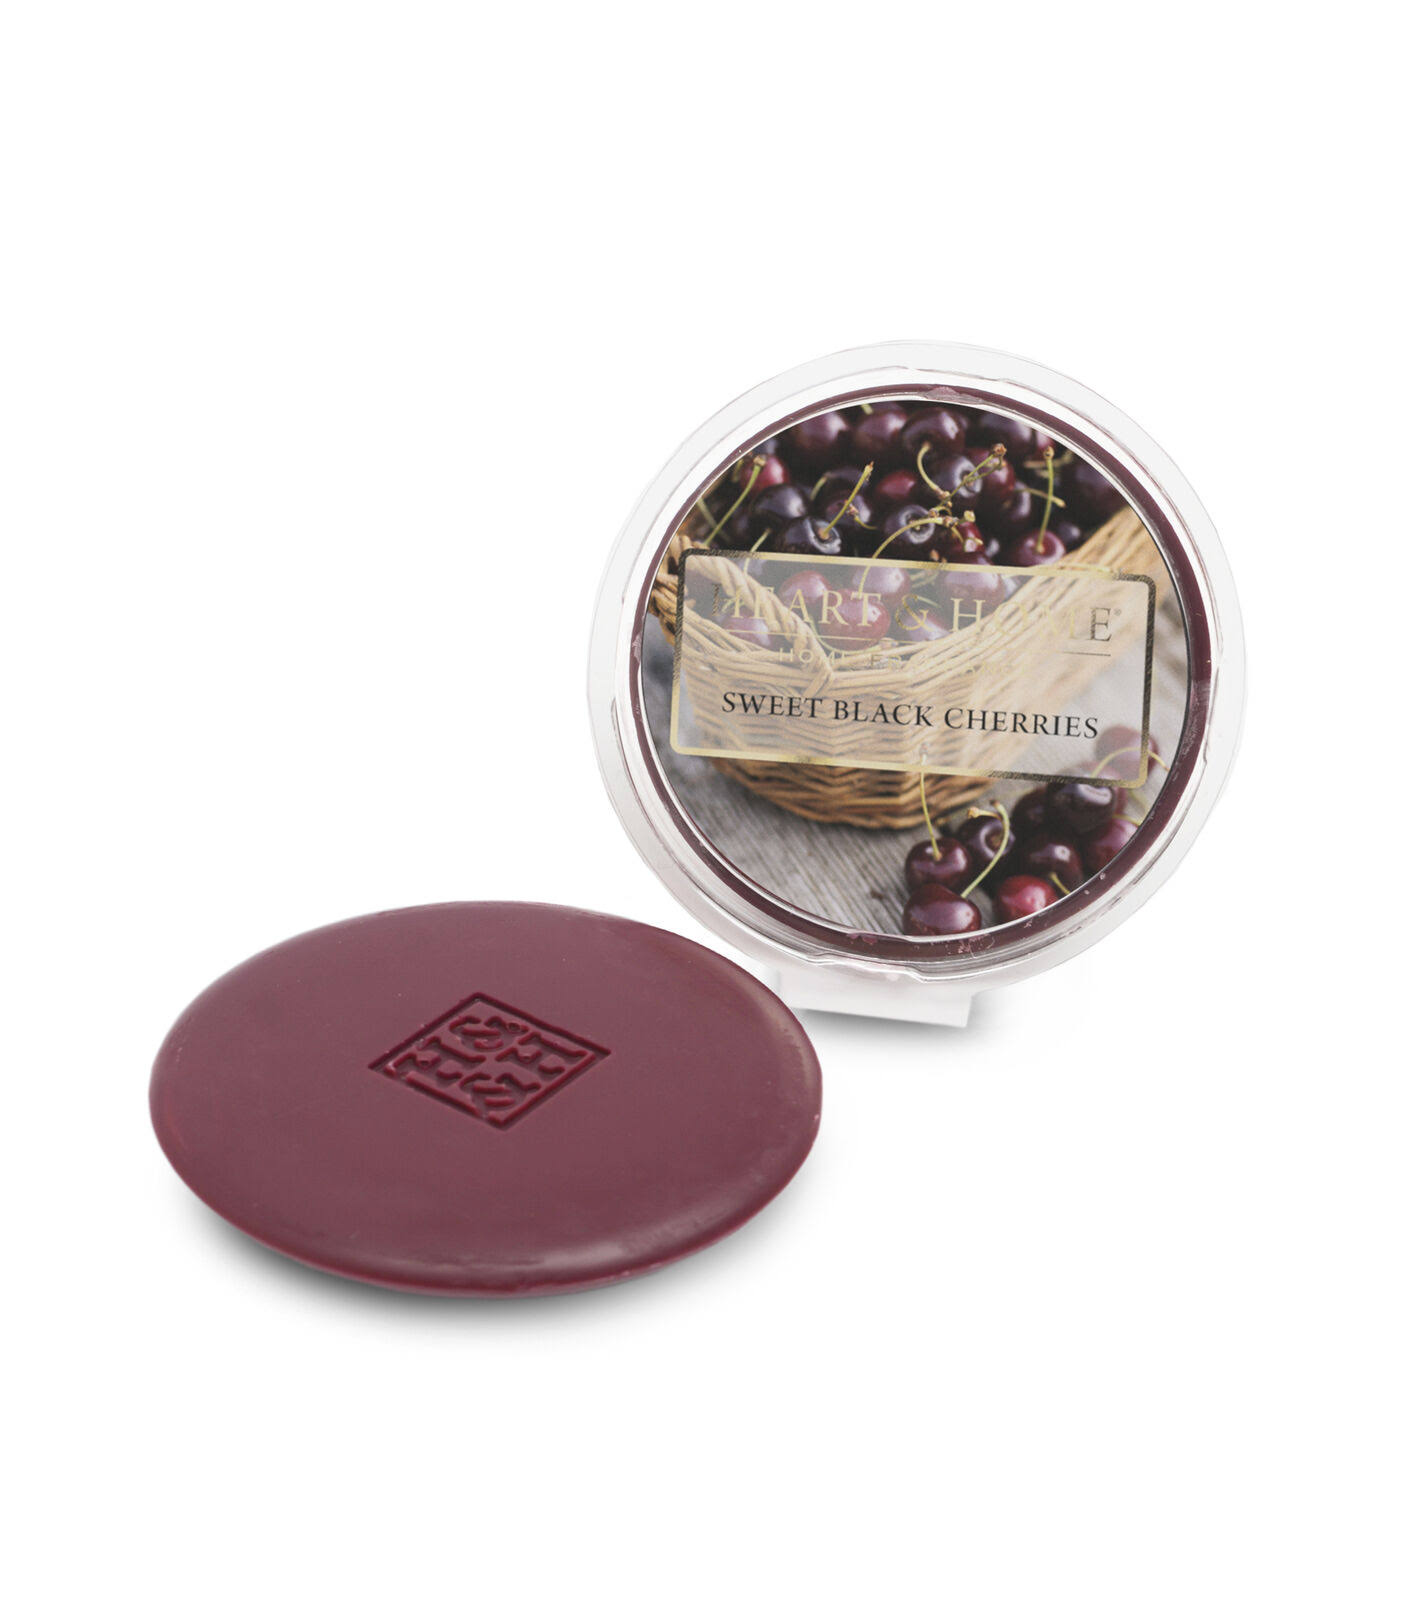 Heart & Home Sweet Black Cherries Scented Wax Melt